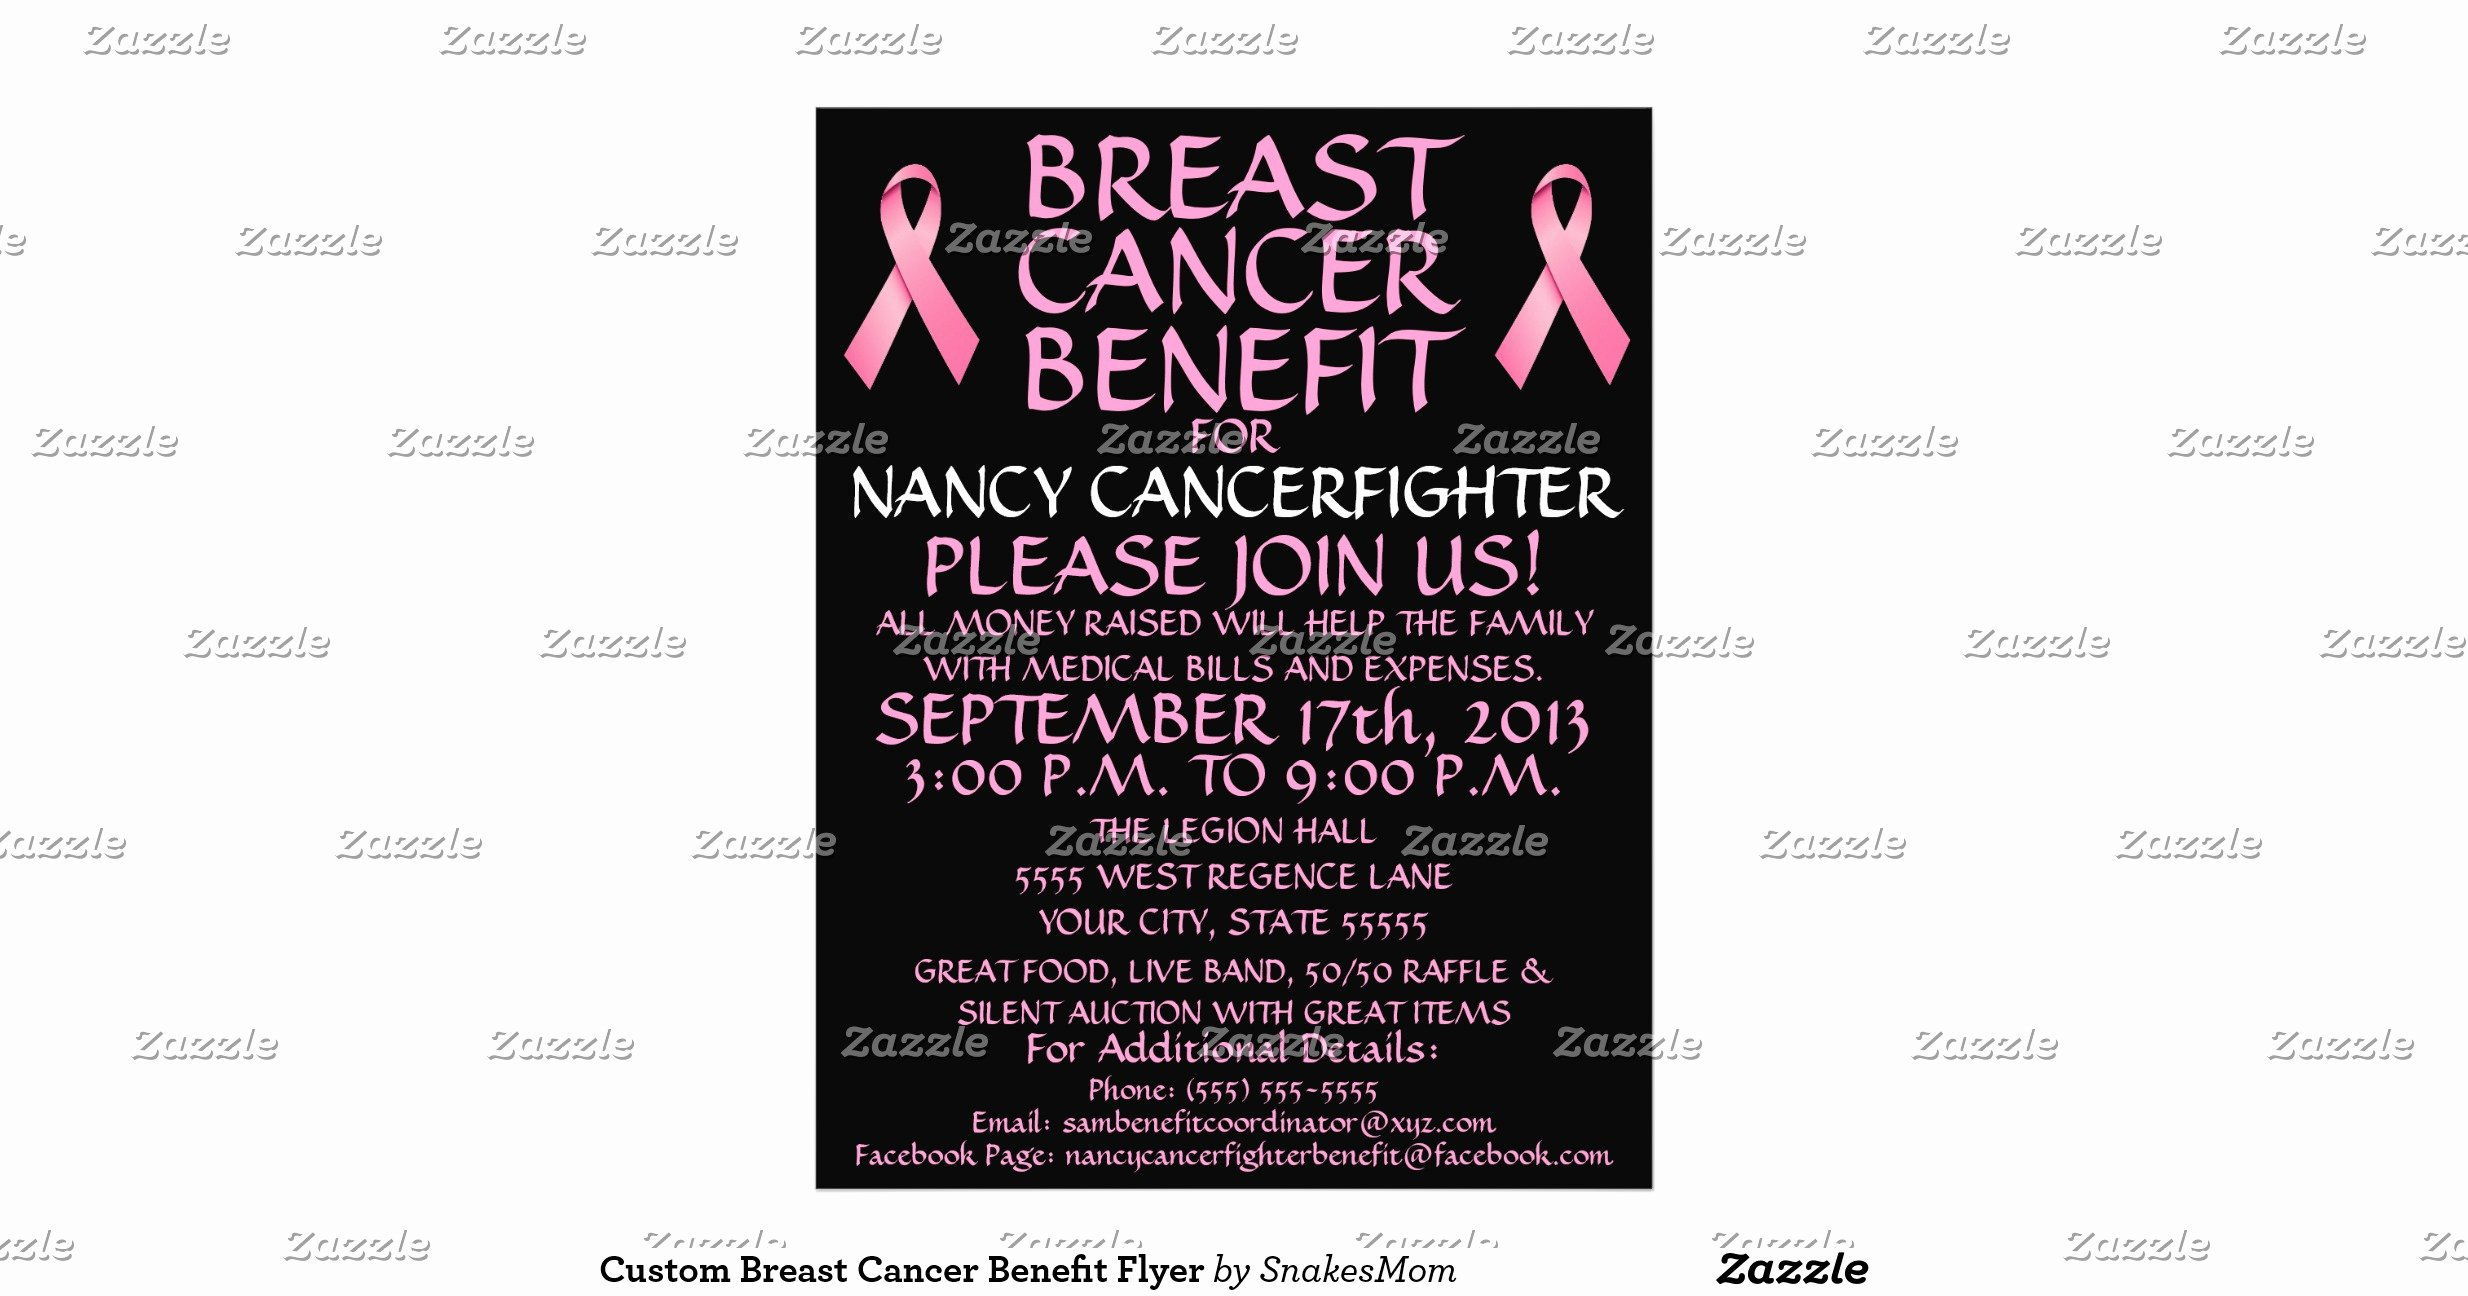 Cancer Benefit Flyer Ideas Awesome Custom Breast Cancer Benefit Flyer